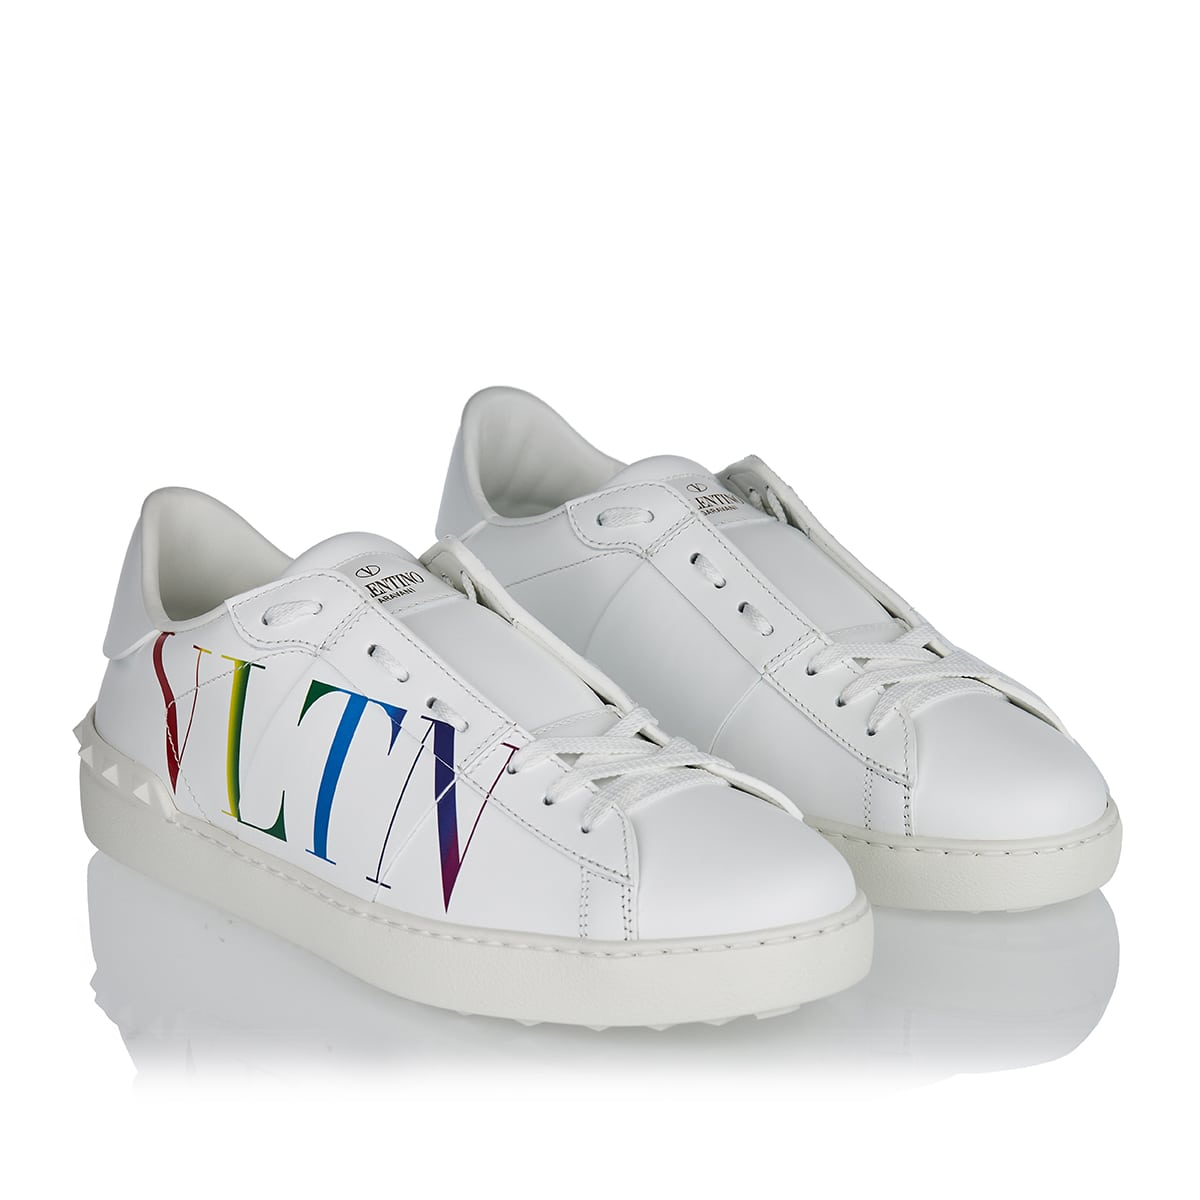 VLTN Open leather sneakers